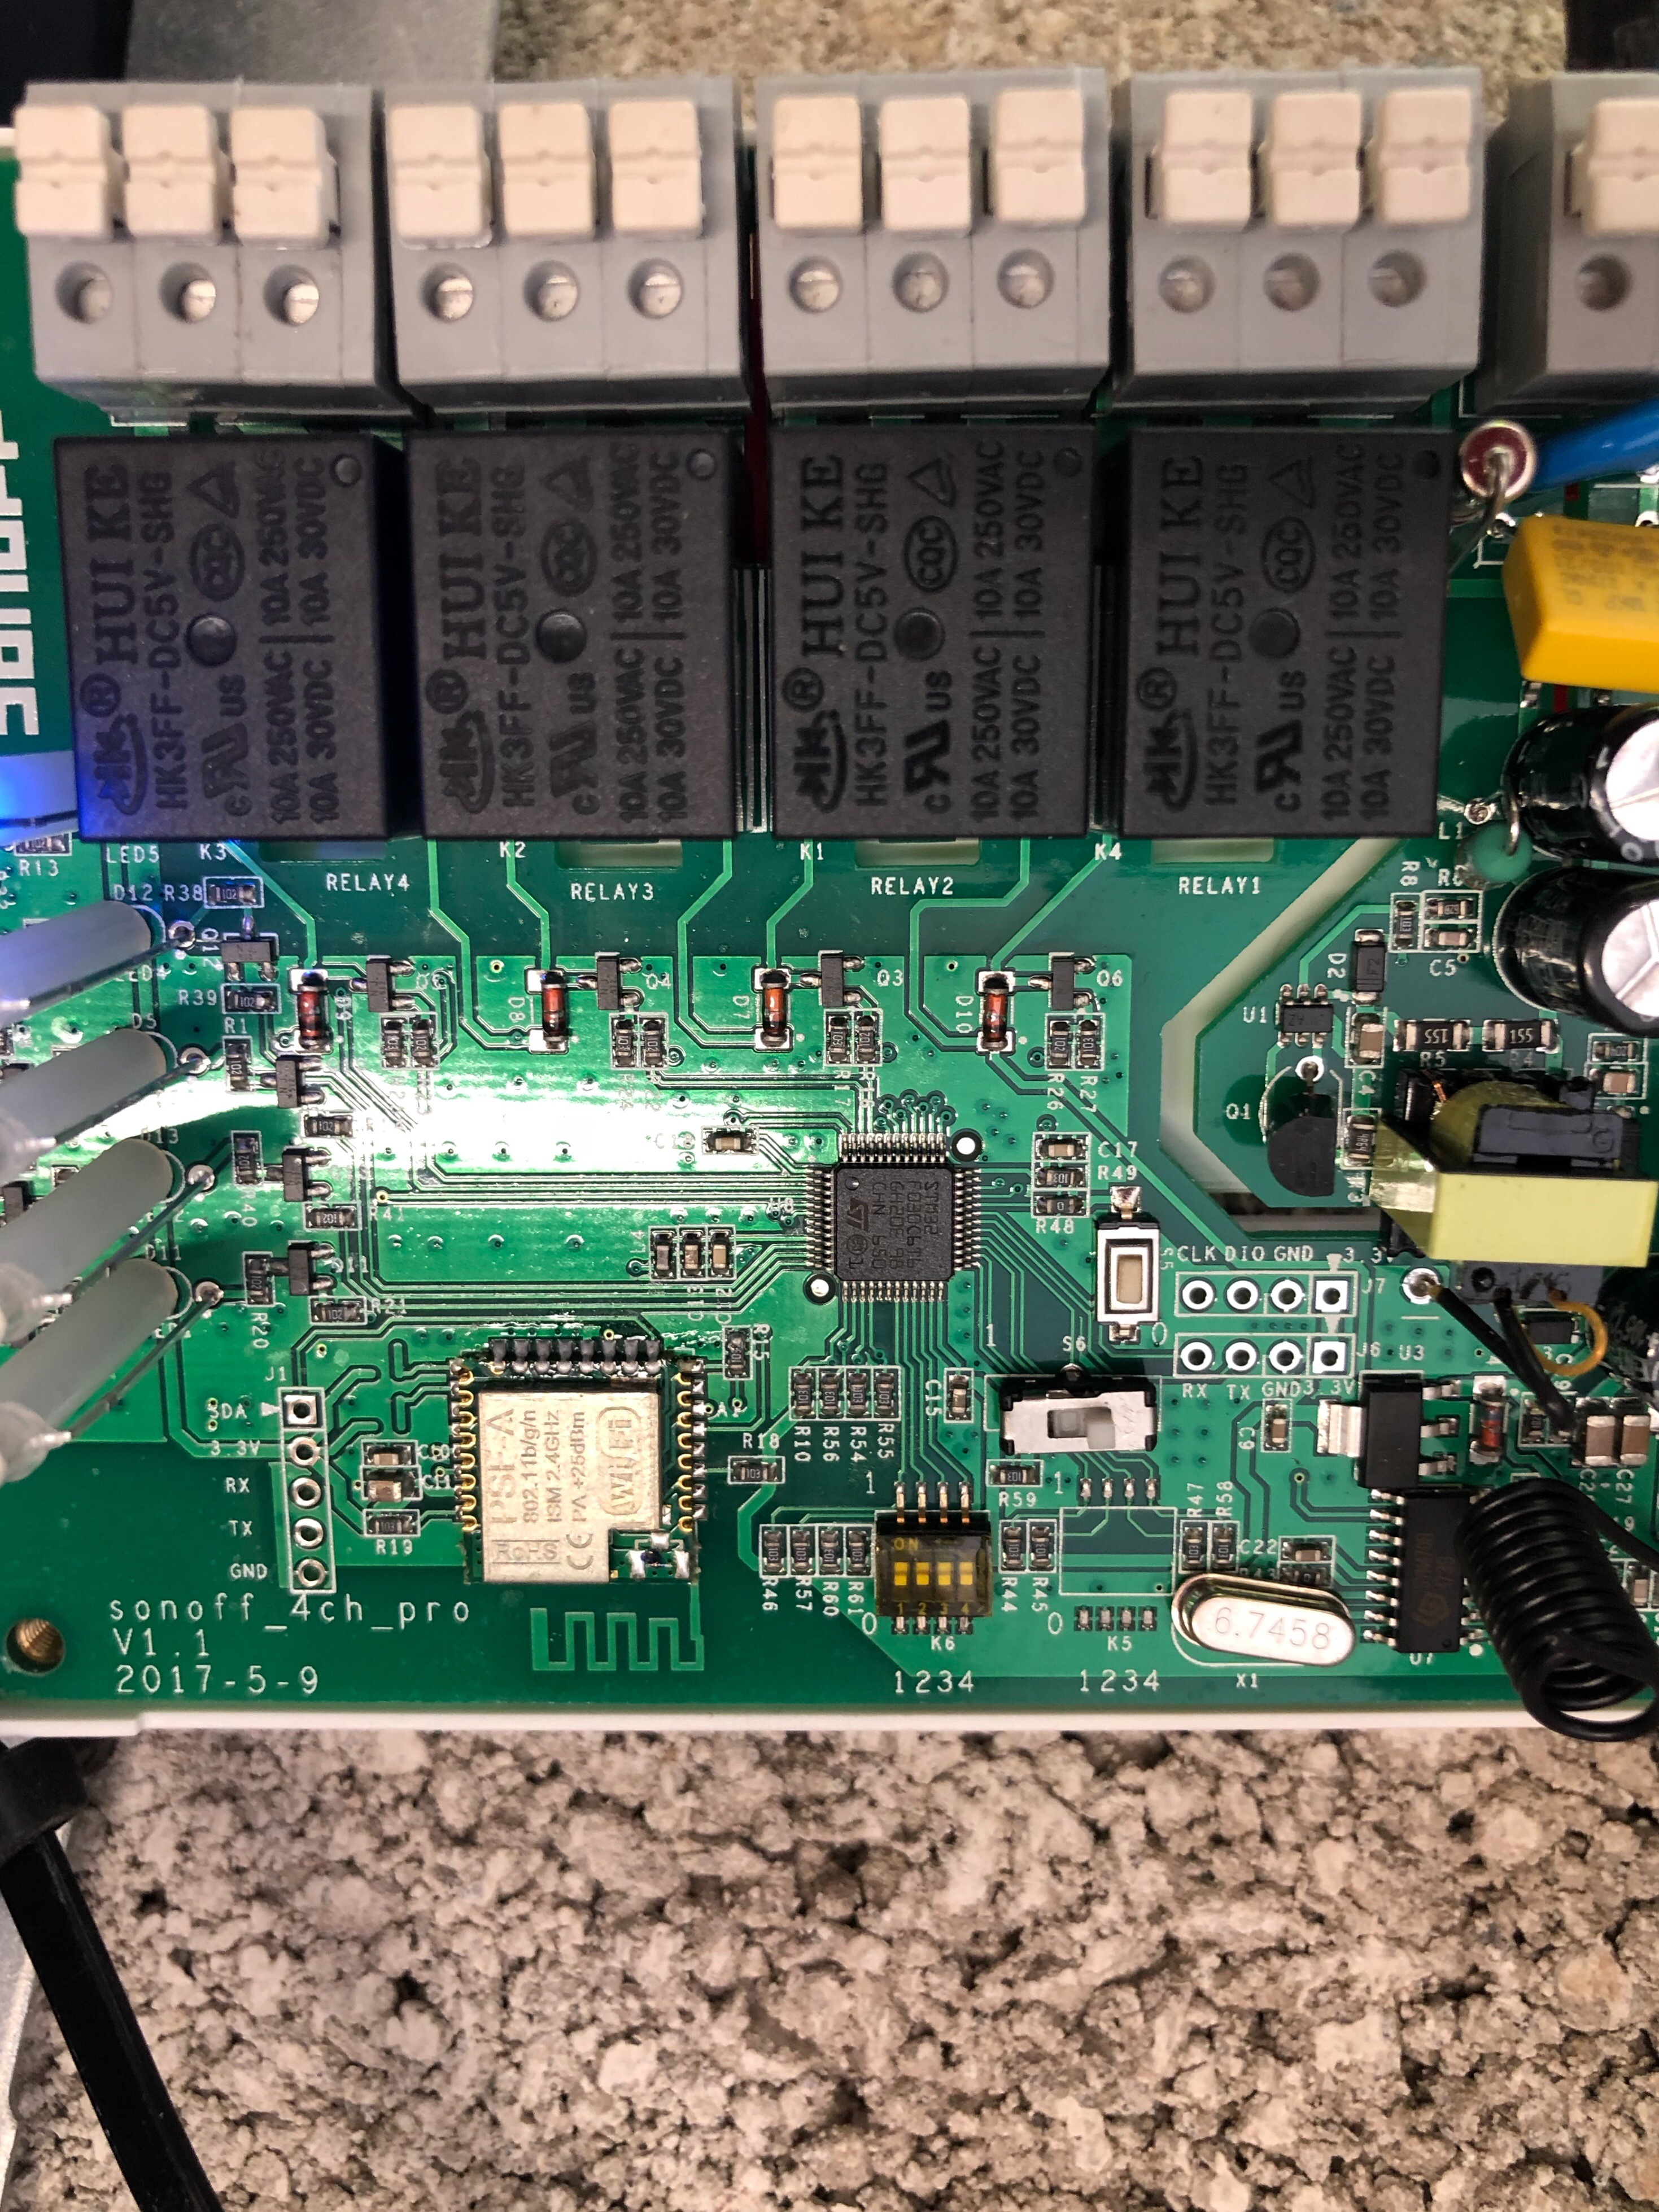 The Sonoff 4ch Pro Scargills Tech Blog Aliexpresscom Buy 37v Pcb Circuit Board Battery Protection Has Anyone Seen This And If So Can You Tell Me How To Configure Inching Without K5 Or Have I Been Sold A Faulty Unit Thanks In Advance